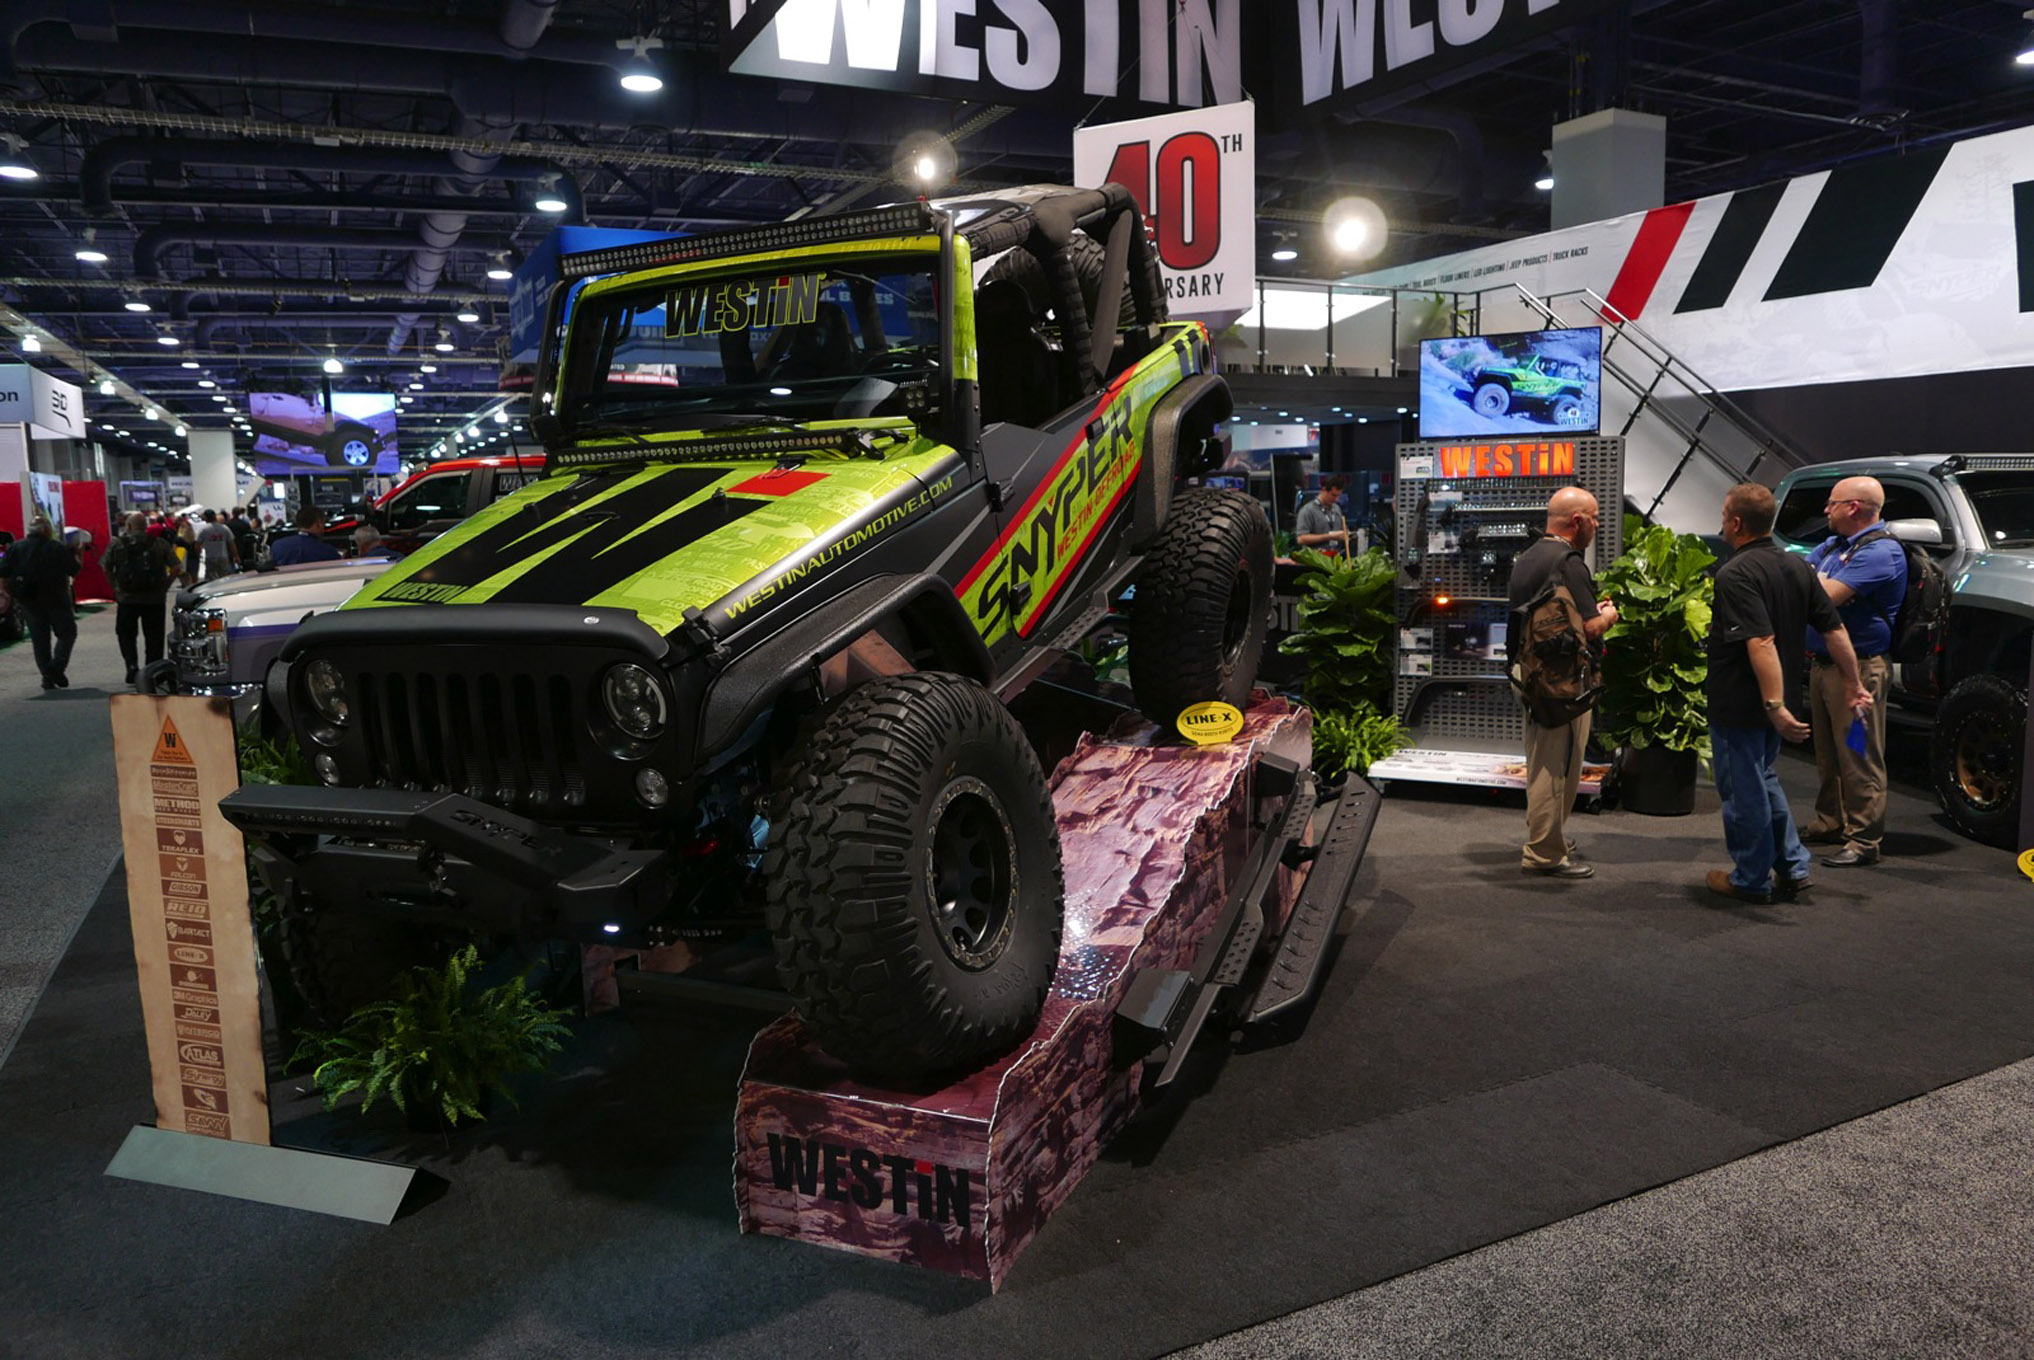 137 sema 2017 day 1 south upper hall gallery photos